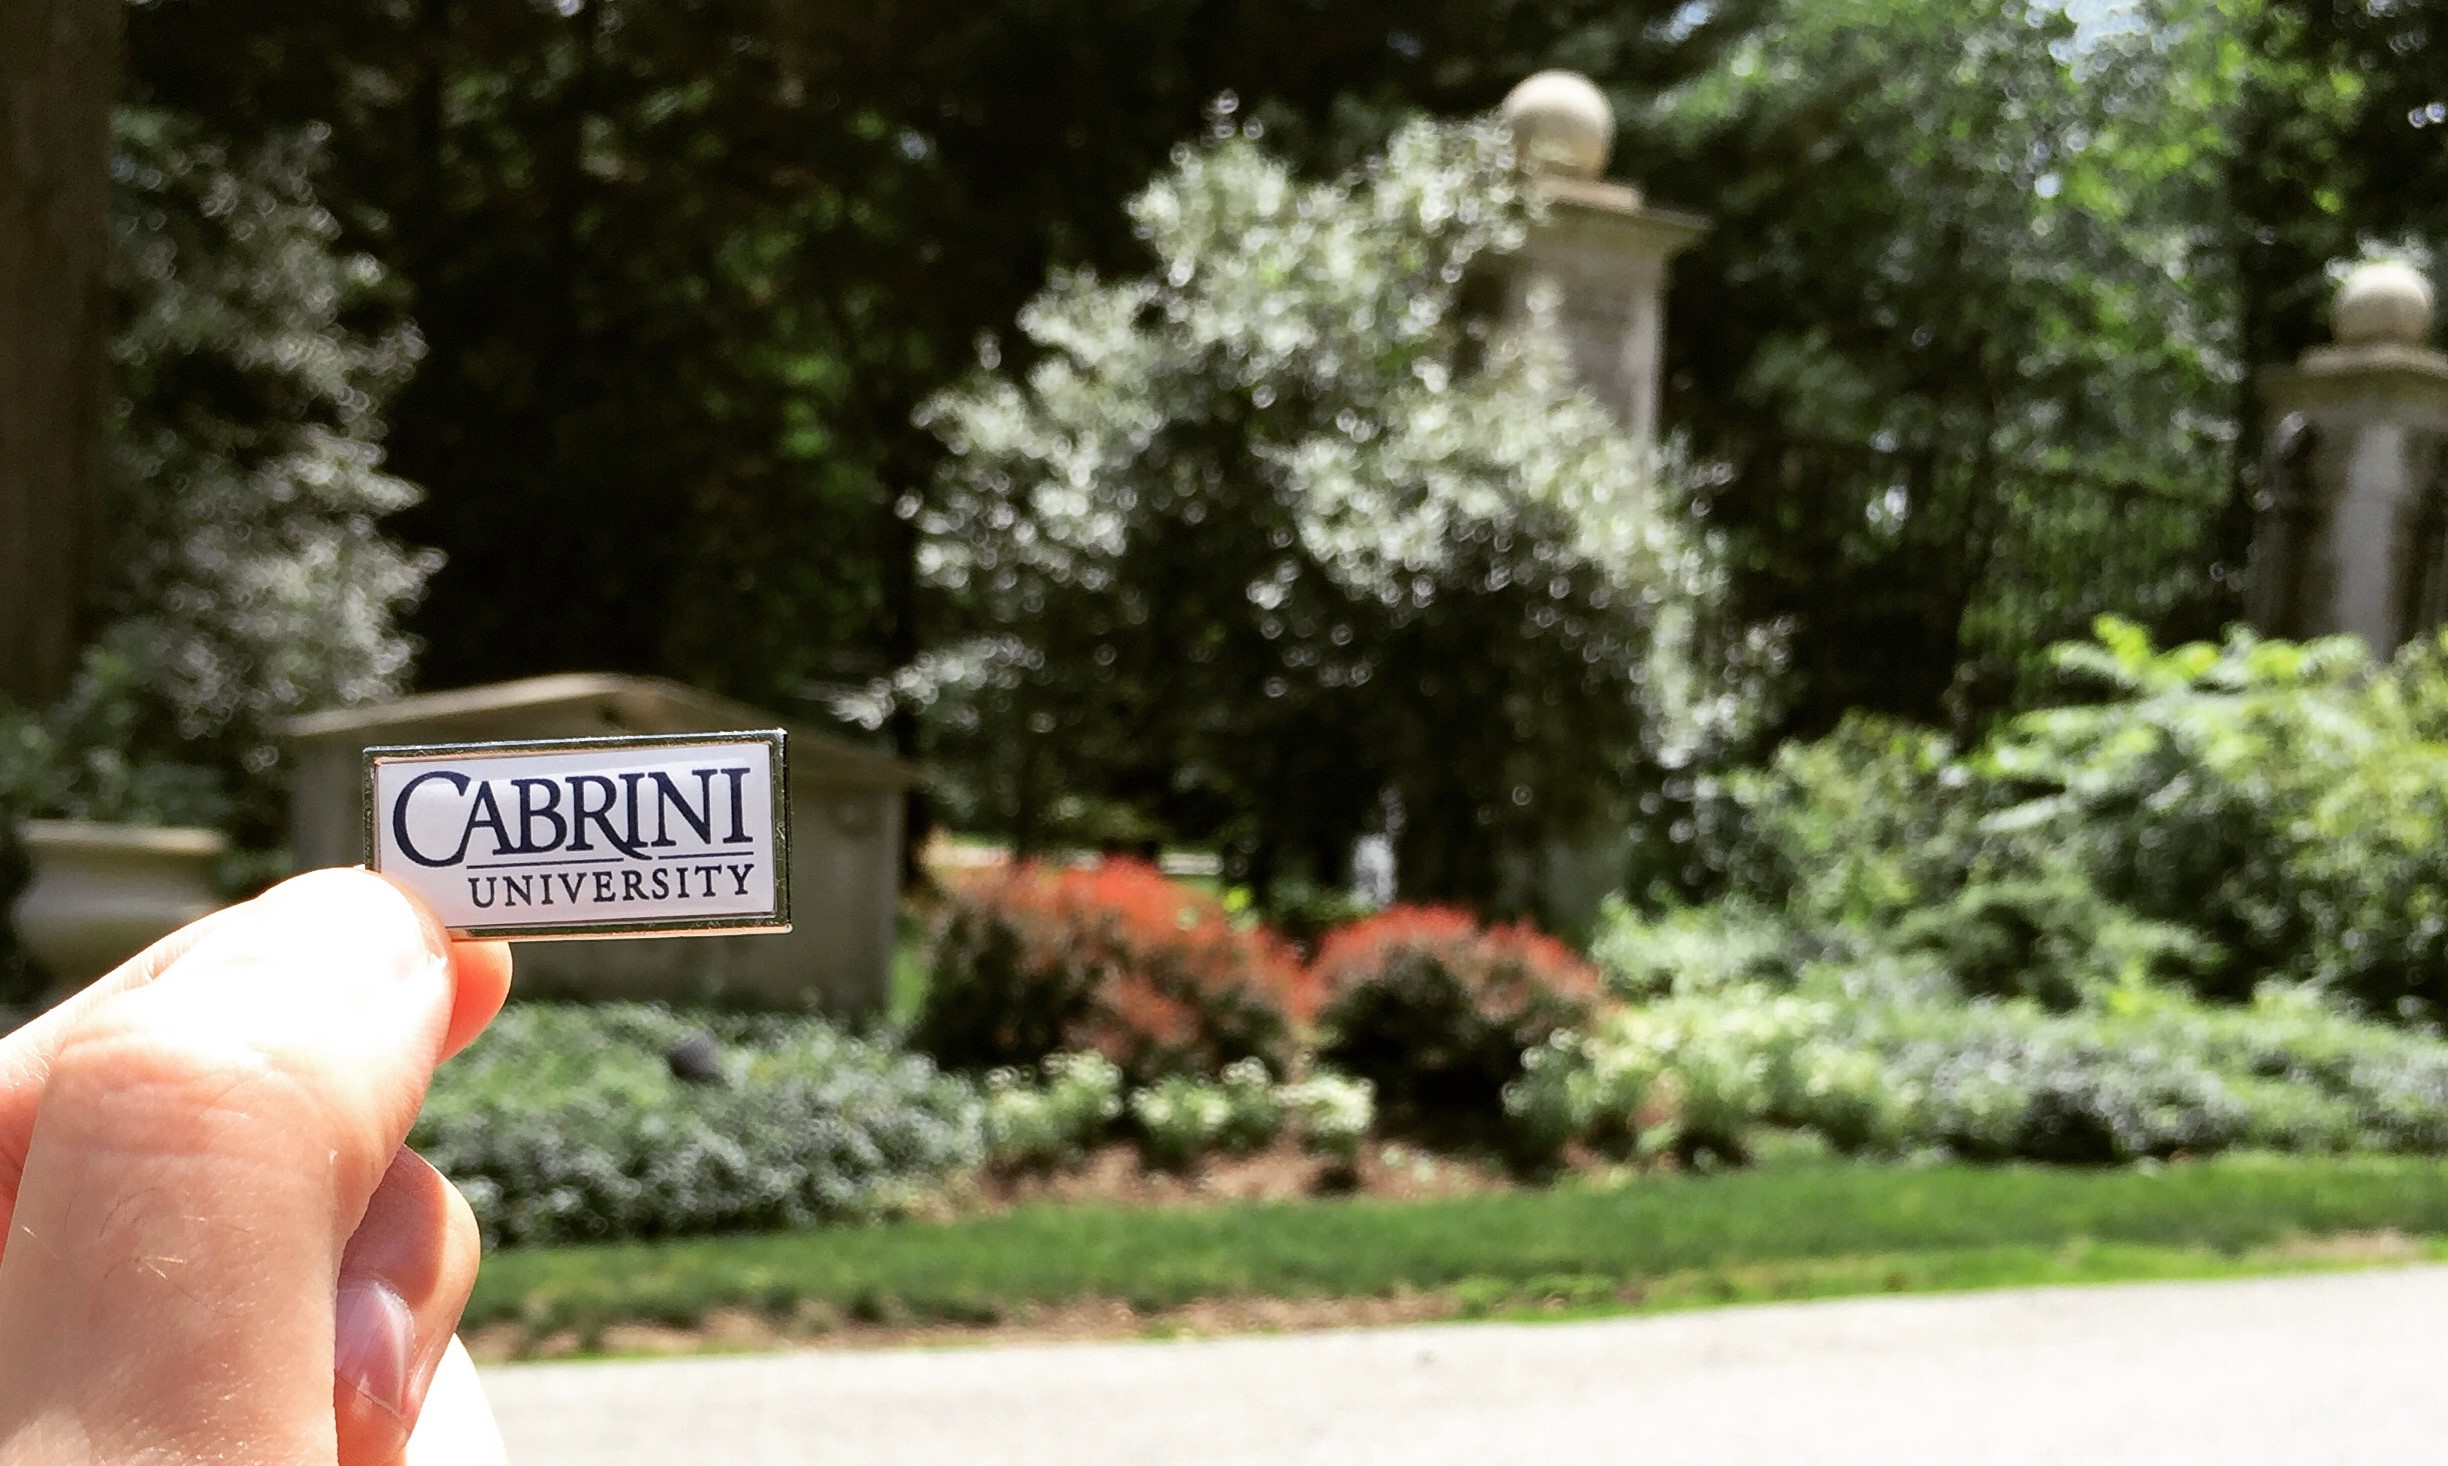 A hand holding a Cabrini University pin over the Cabrini College sign